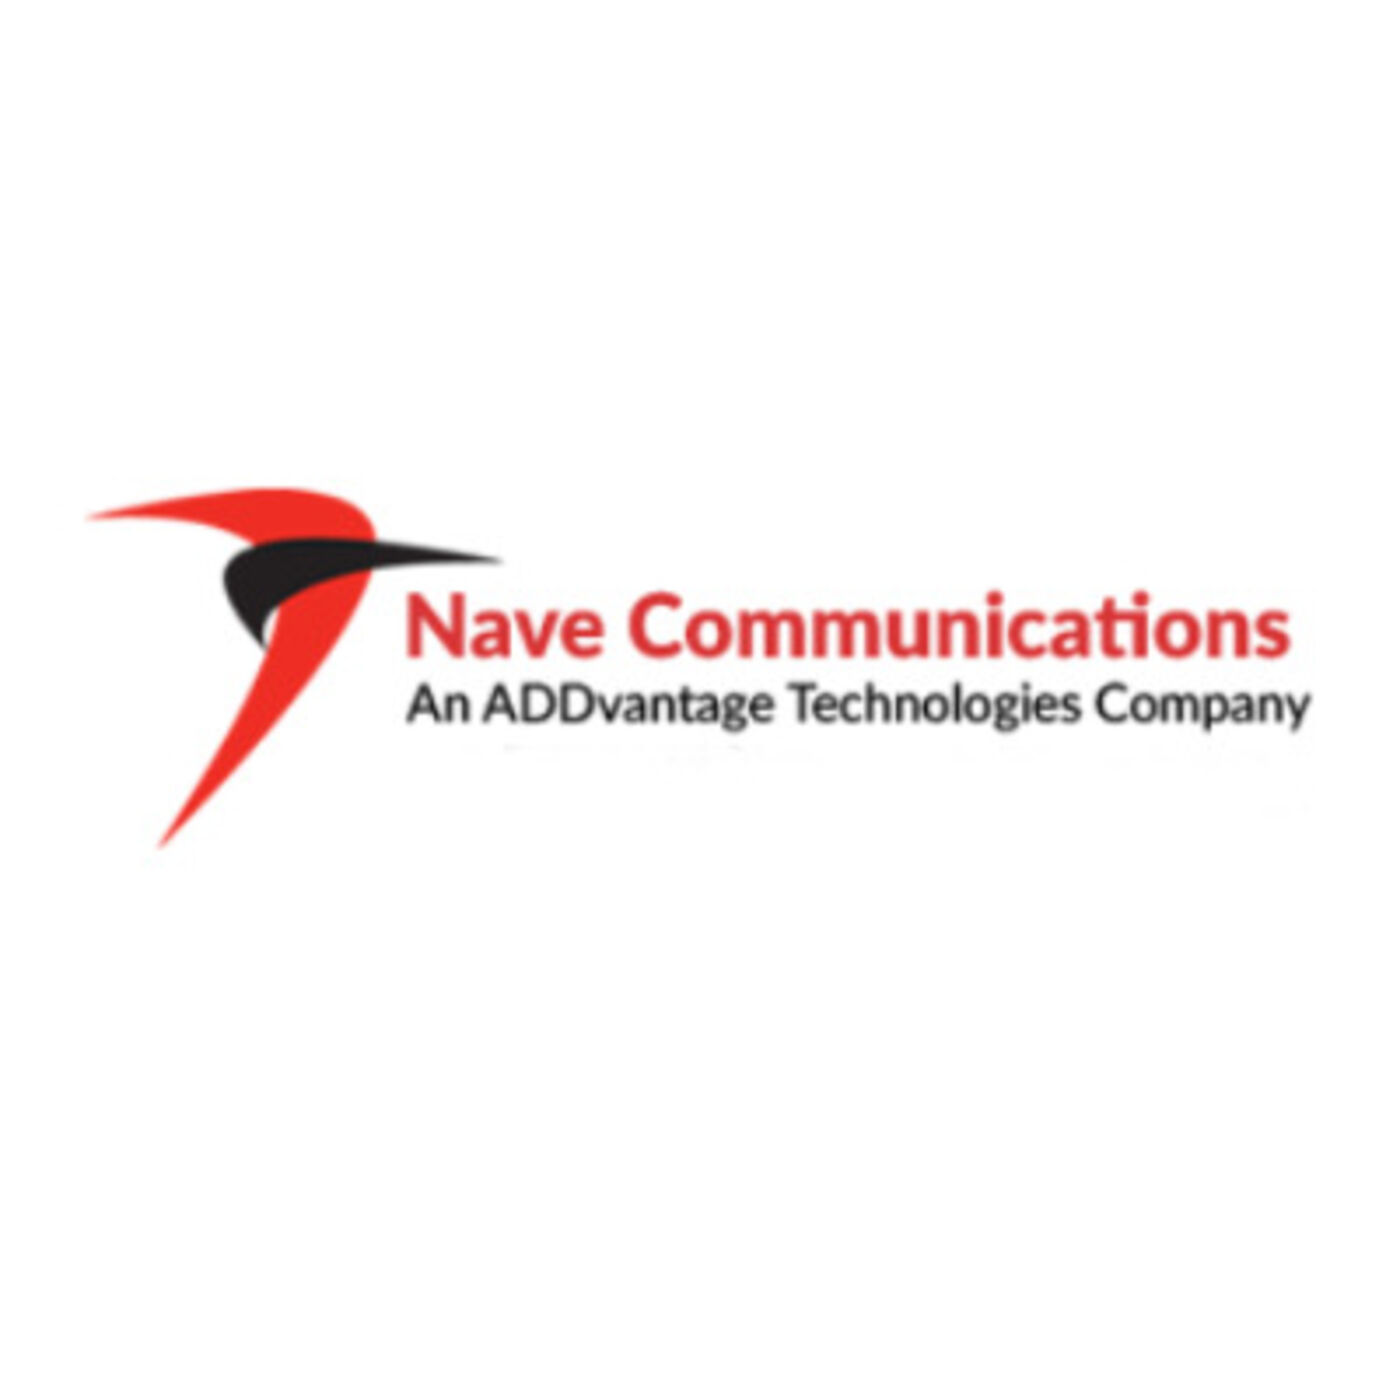 PTC'21: Nave Communications on Telecom Hardware Reuse, Rural Broadband Rollout & More